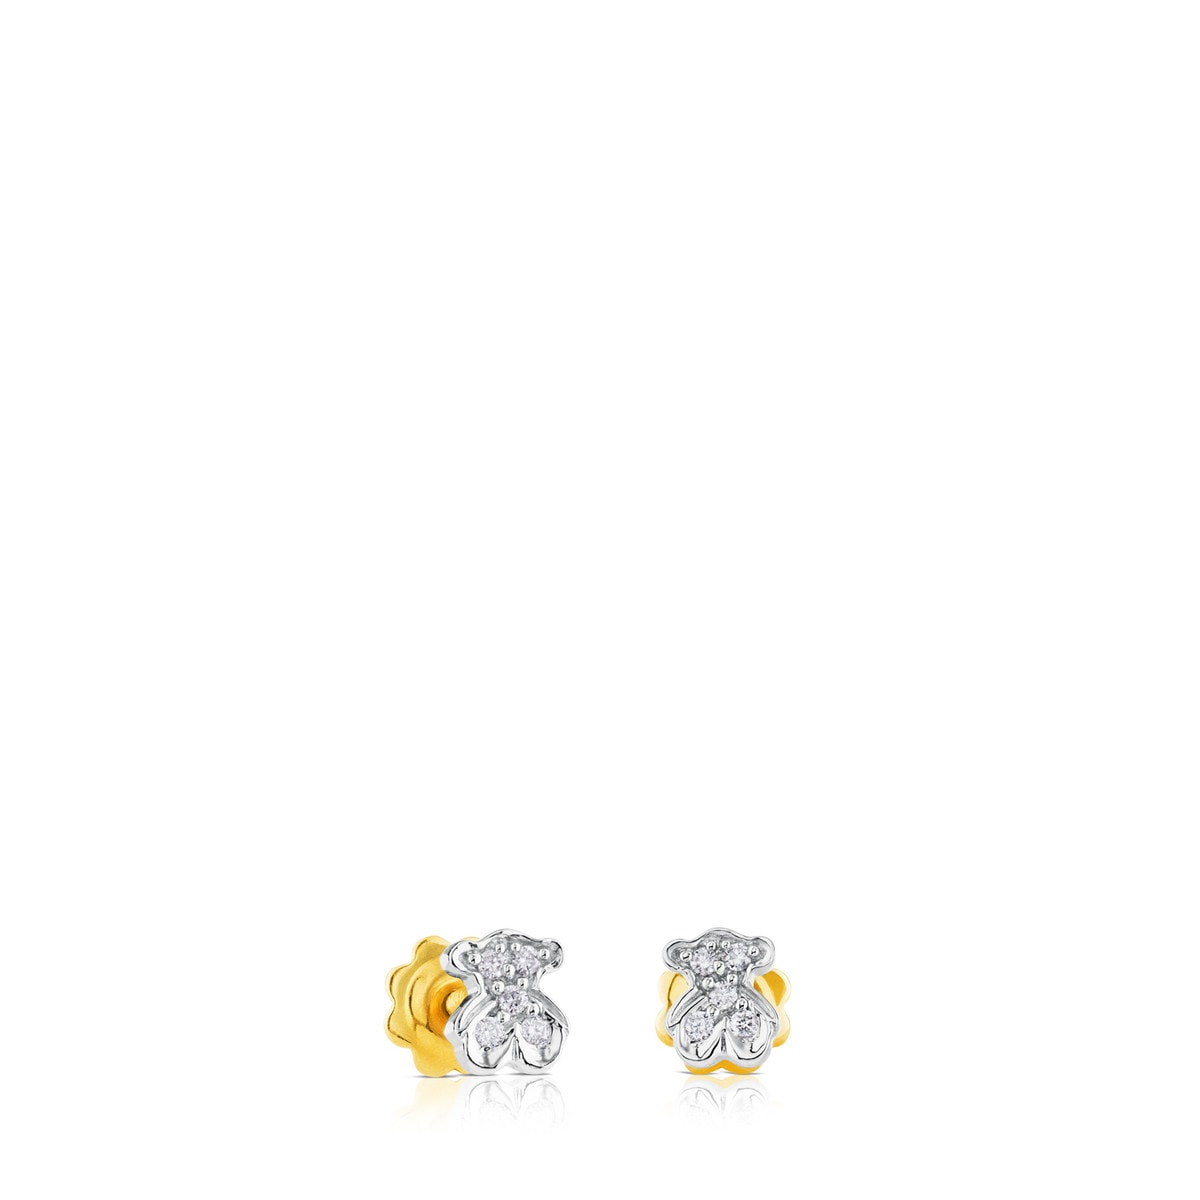 White Gold Puppies Earrings with Diamond